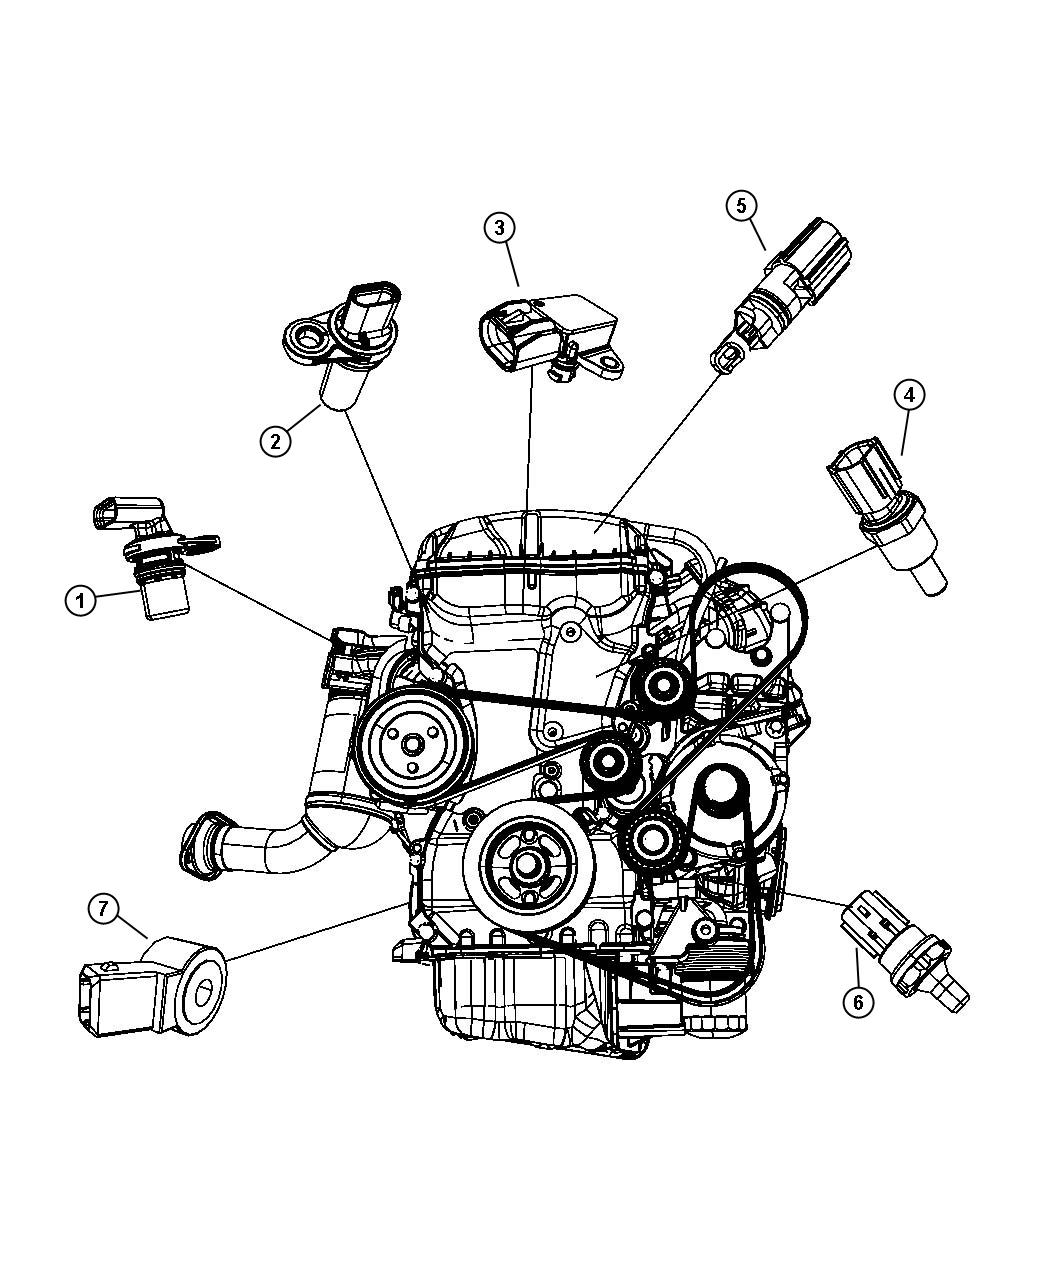 Chrysler 200 engine diagram opel engine diagrams at justdeskto allpapers